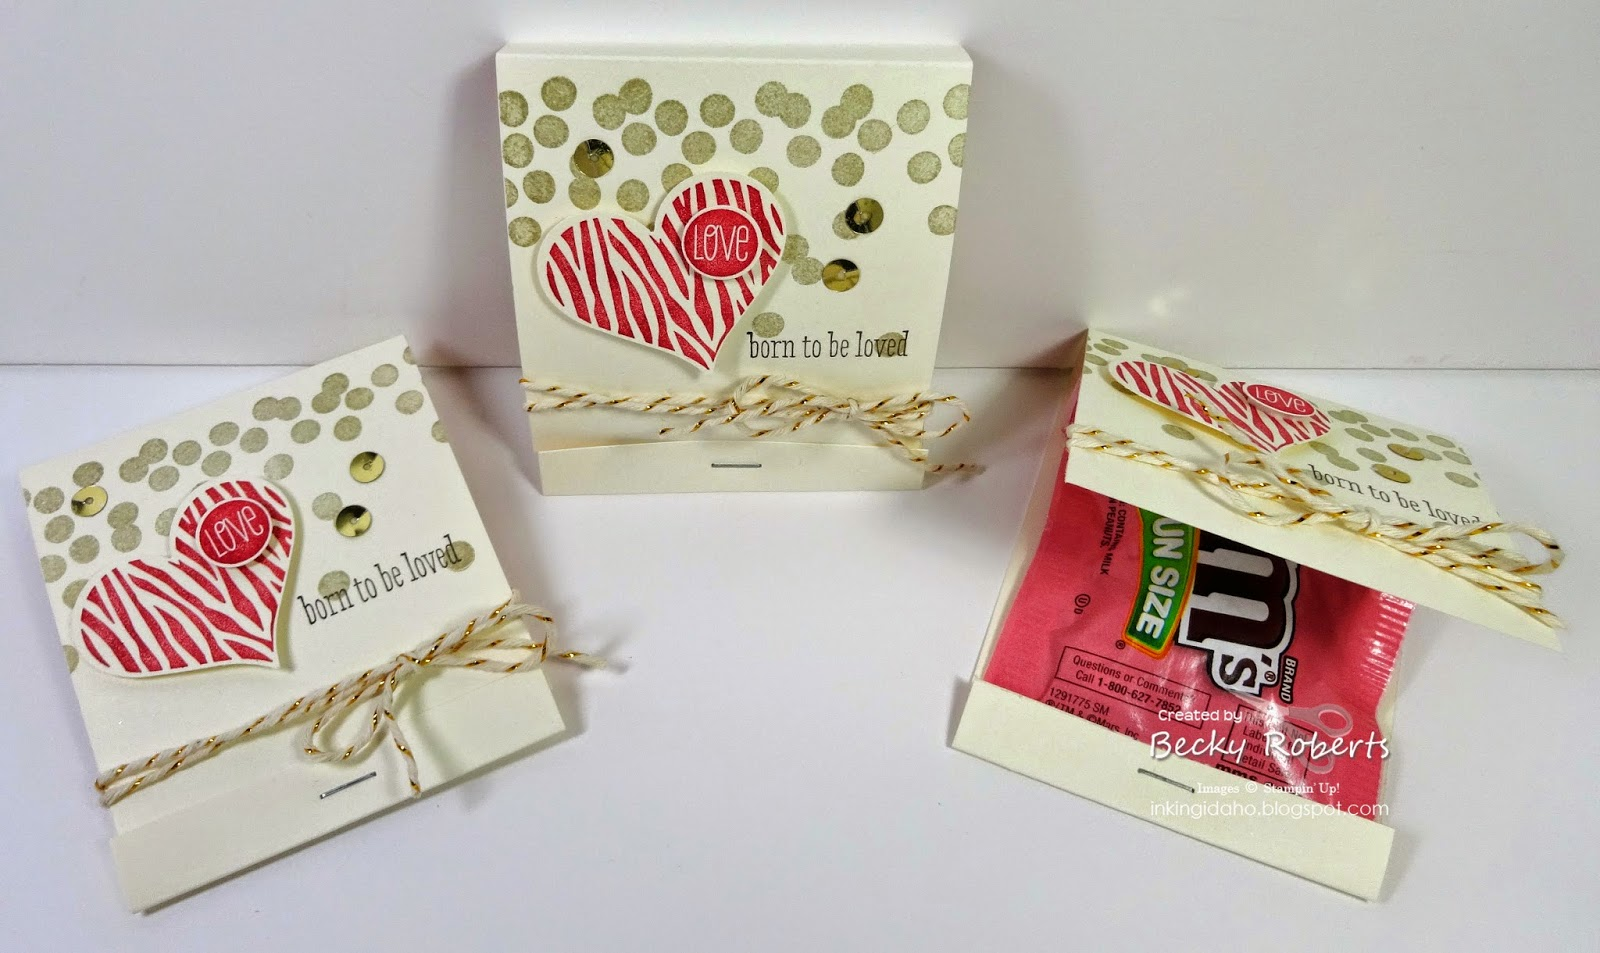 Inking Idaho: Groovy Love Valentine Candy Matchbooks